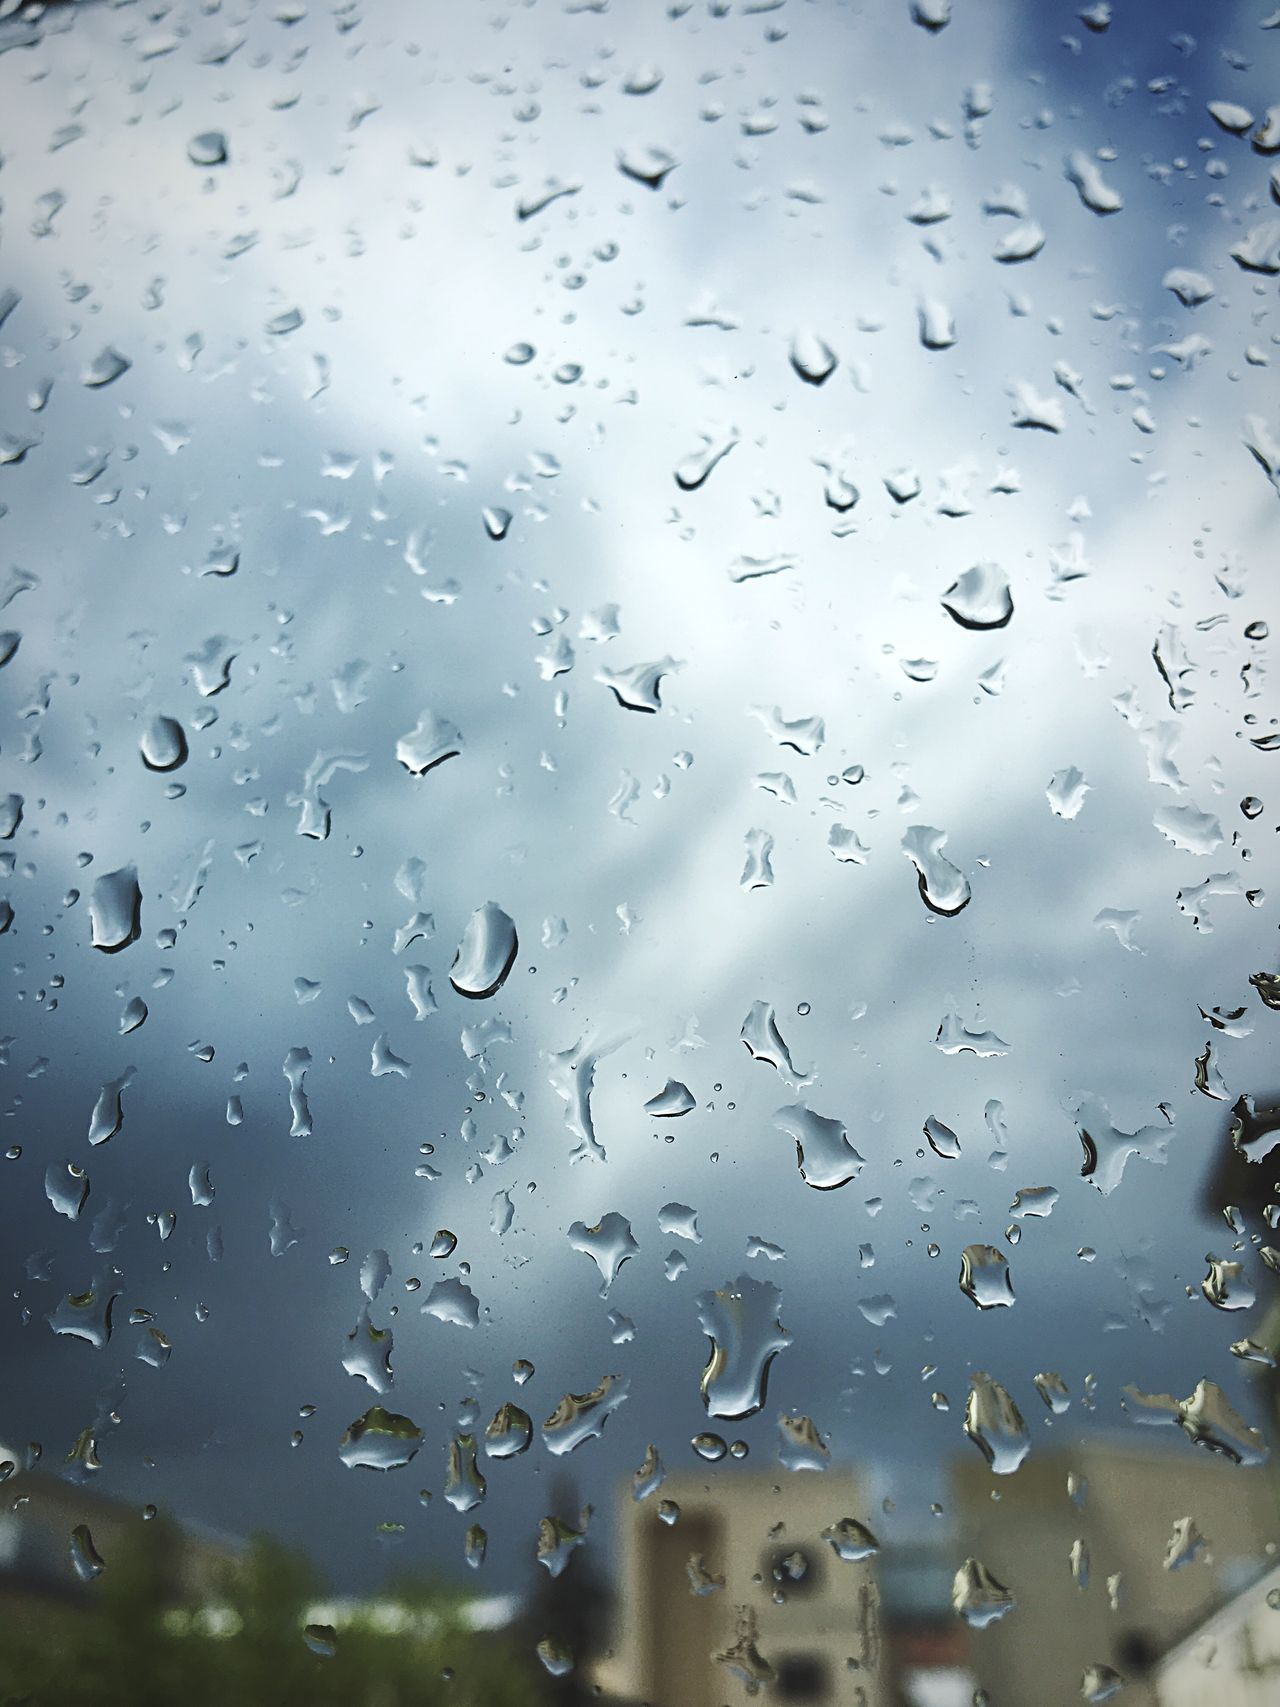 Raindrops Drop Window Water Wet No People Close-up Focus On Foreground Day RainDrop Indoors  Full Frame Nature Backgrounds Sky